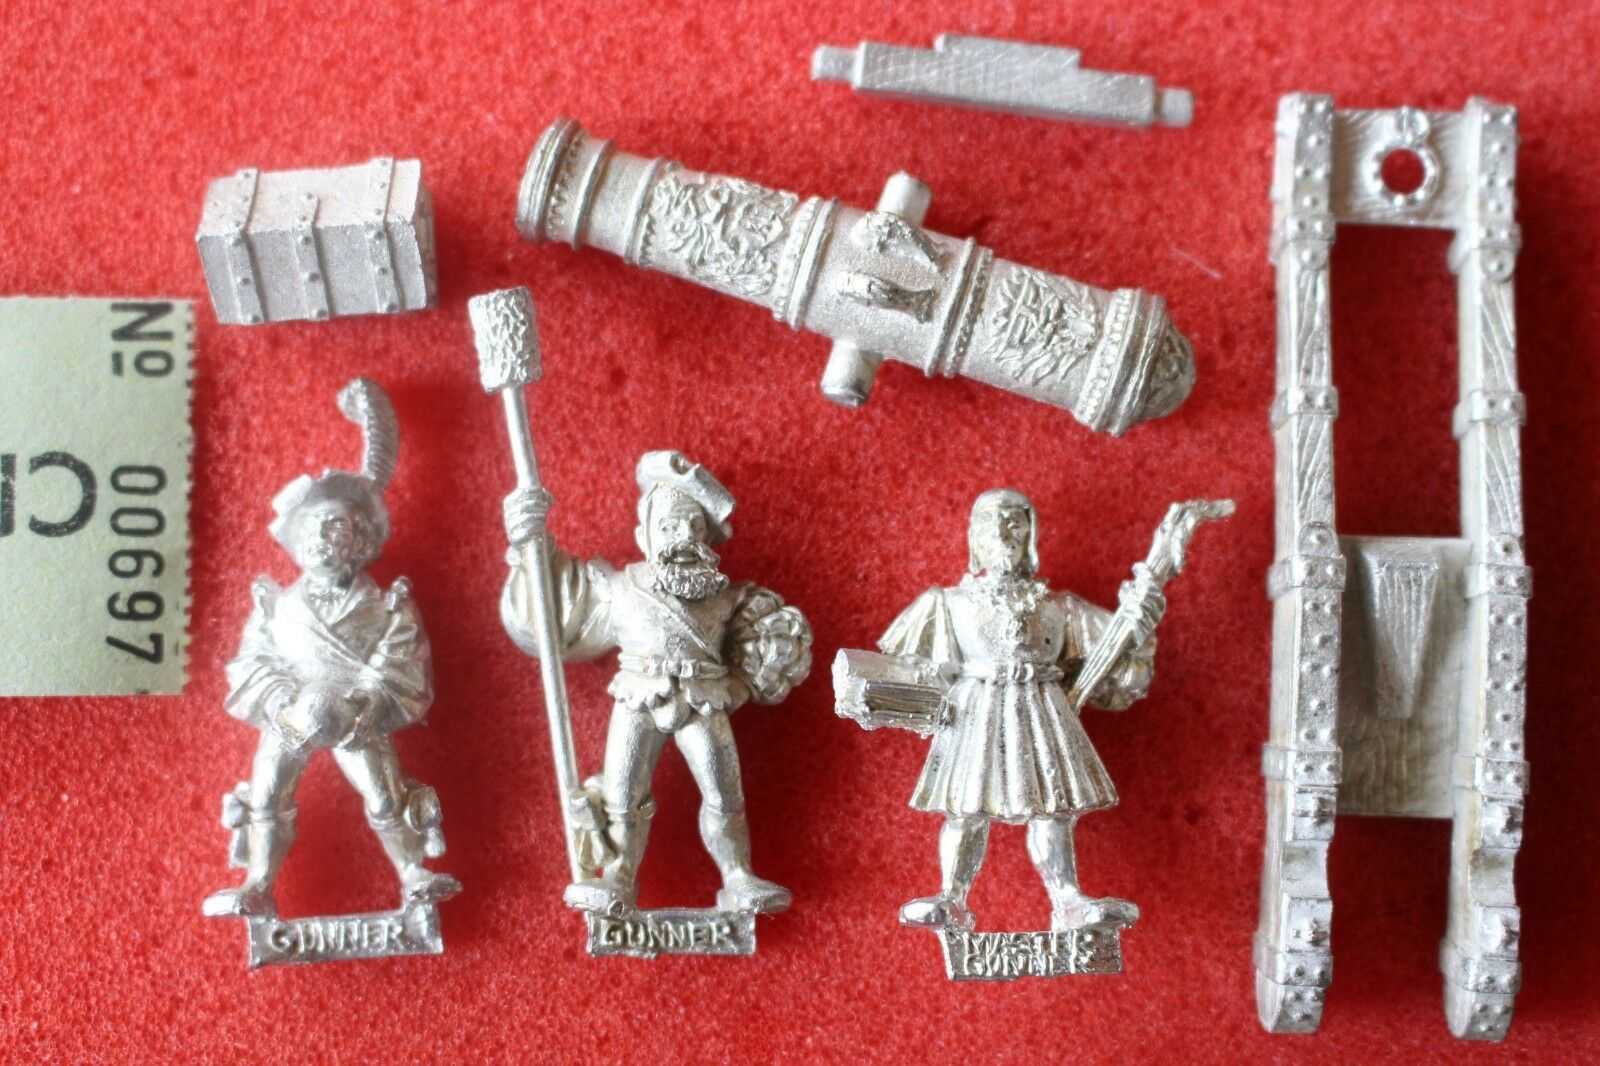 Games Workshop Warhammer Fantasy Empire Great Cannon with Crew Metal Figures GW